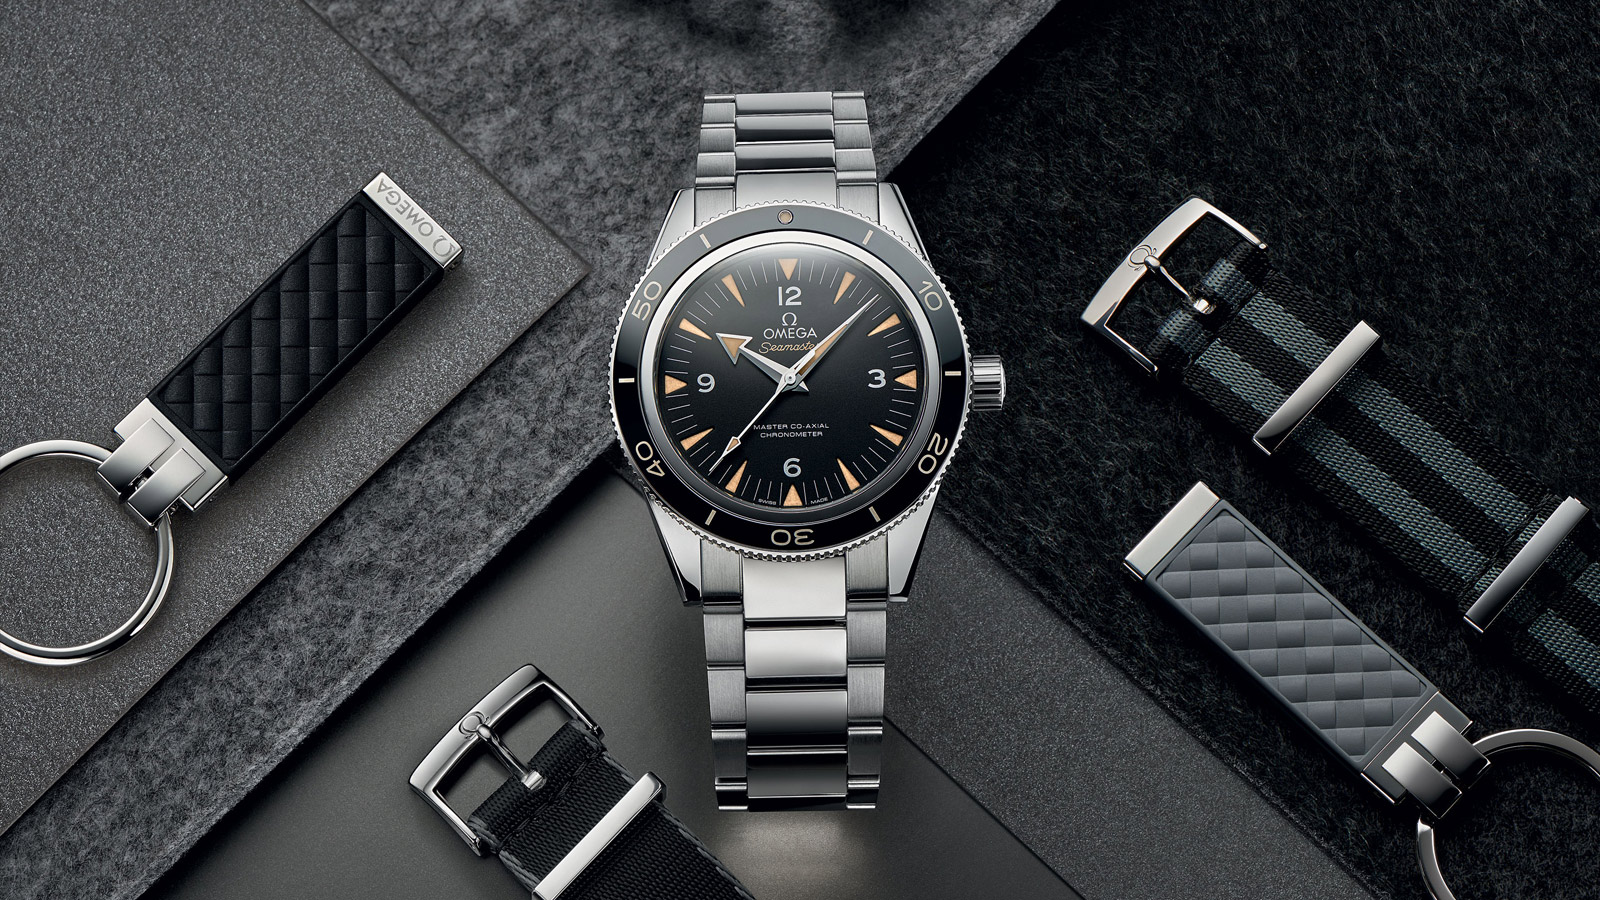 Seamaster Seamaster 300 Seamaster 300 Omega Master Co‑Axial 41 mm - 233.30.41.21.01.001 - Visualizzare 6